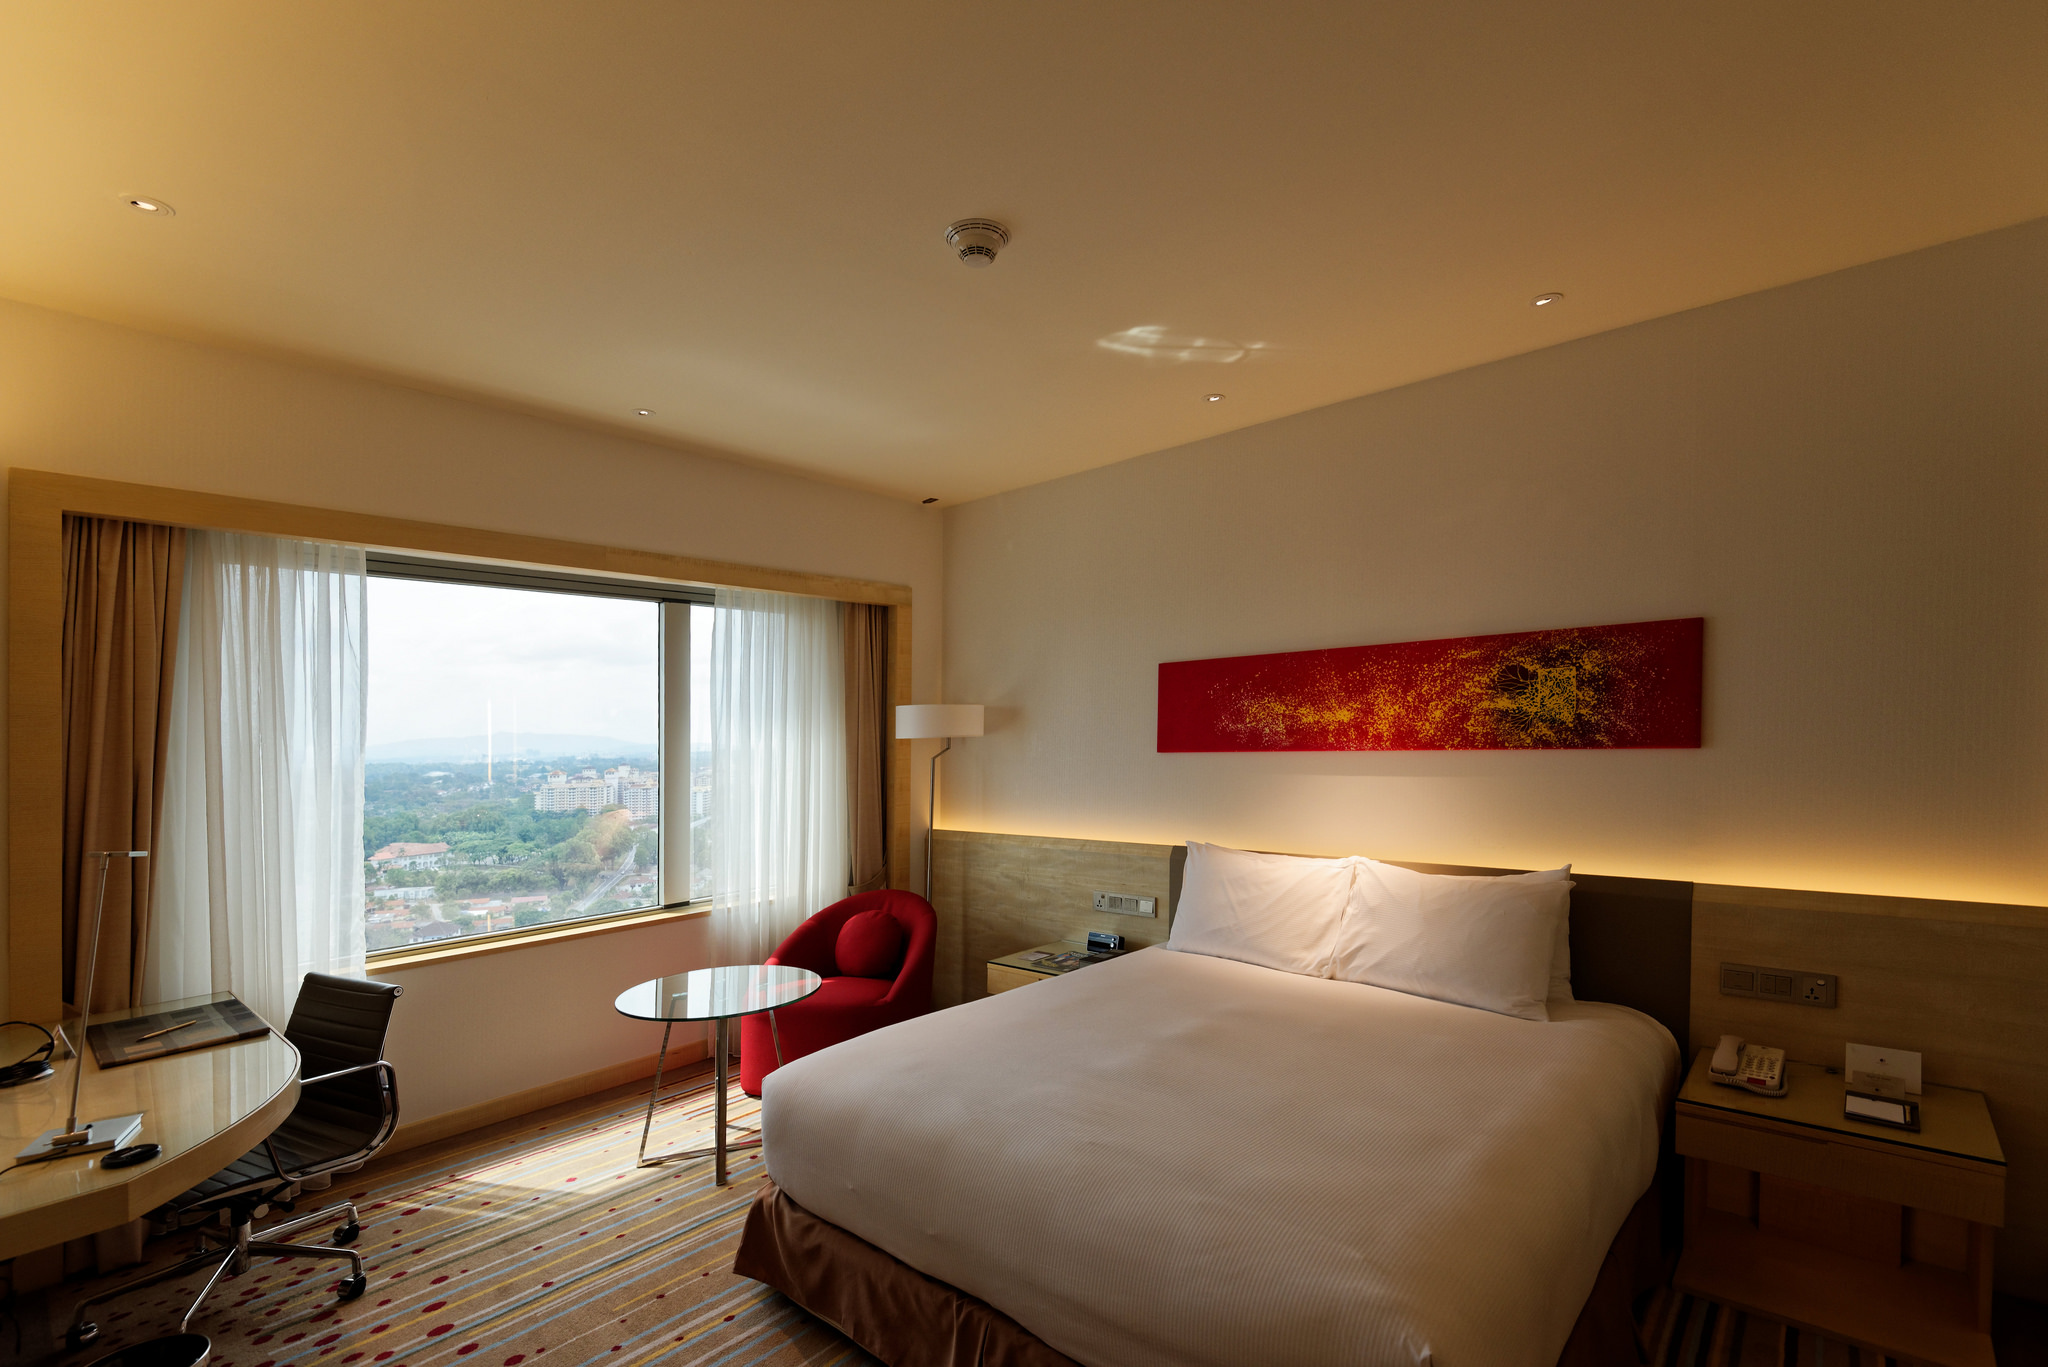 Executive Room in Doubletree By Hilton Hotel Johor Bahru